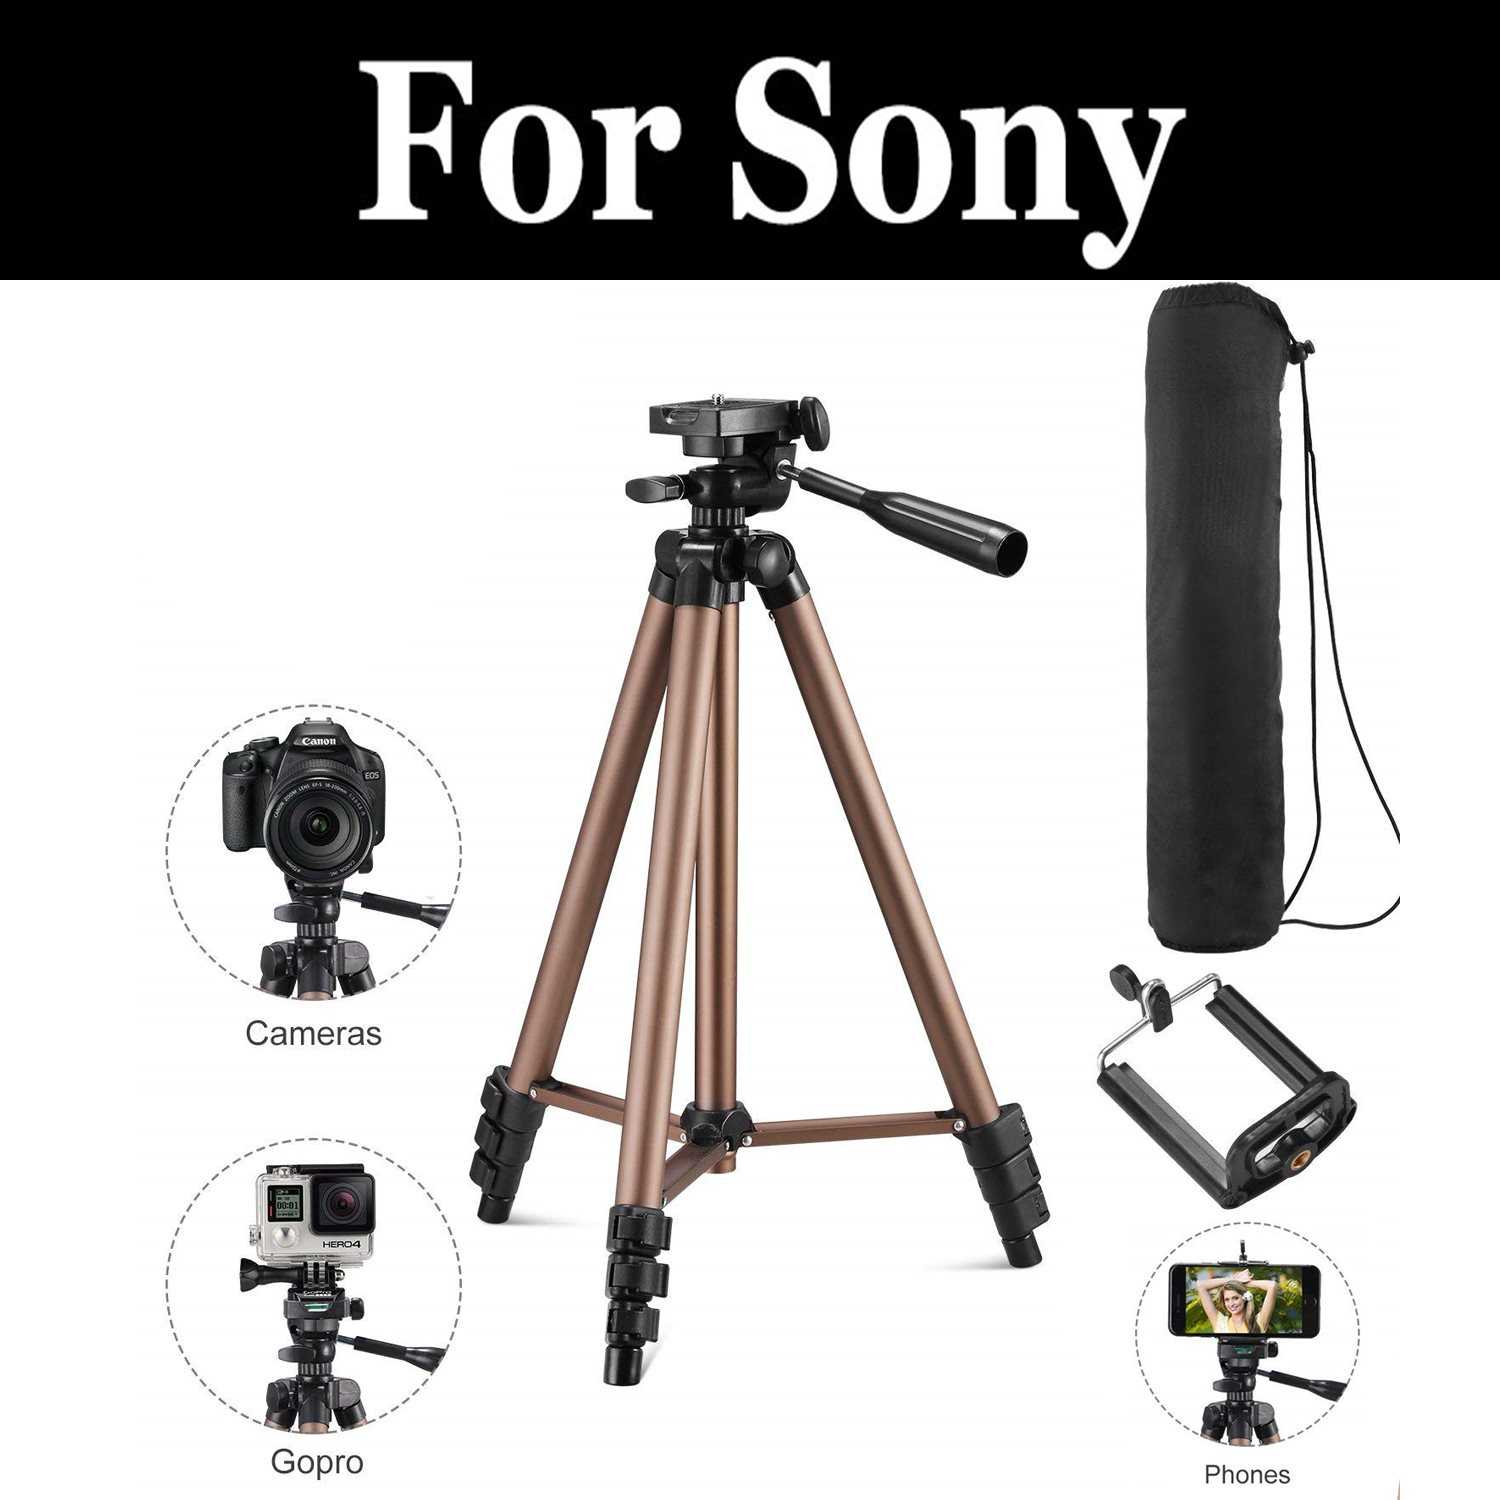 DSC-W130 DSC-W80 DSC-W35 DSC-W200 DSC-W30 Deluxe 57 Camera Tripod with Carrying Case For The Sony Cybershot DSC-W300 DSC-W120 DSC-W90 DSC-W50 Digital Cameras DSC-W70 DSC-W170 DSC-W150 DSC-W100 DSC-W55 DSC-W110